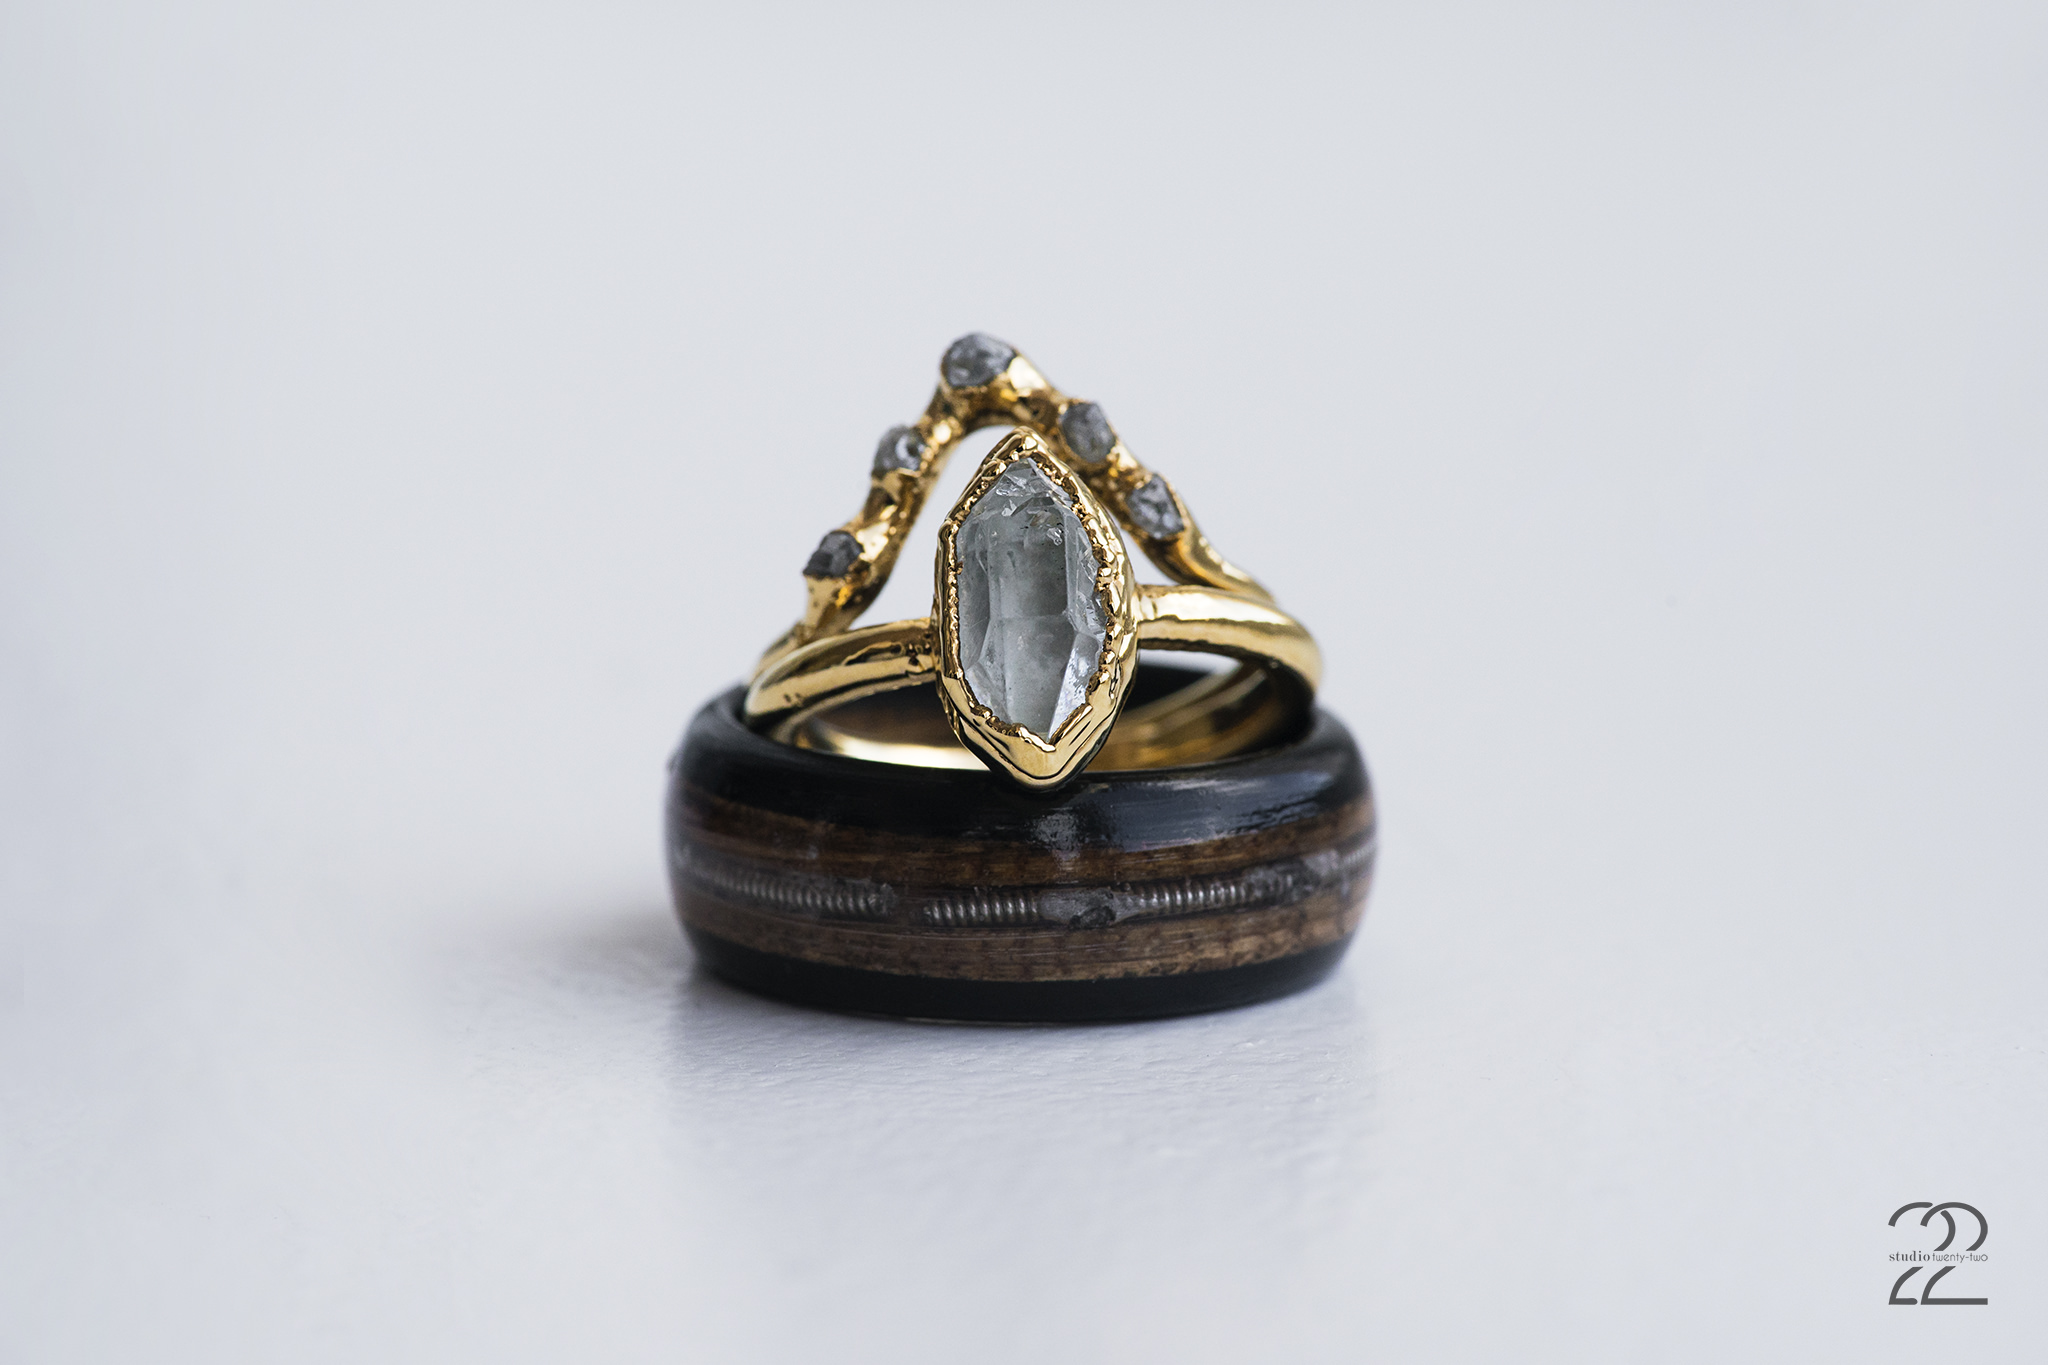 I love small businesses, and Doug + Brooke opted to choose beautifully handcrafted rings from small businesses for their 10 year vow renewal. Brooke